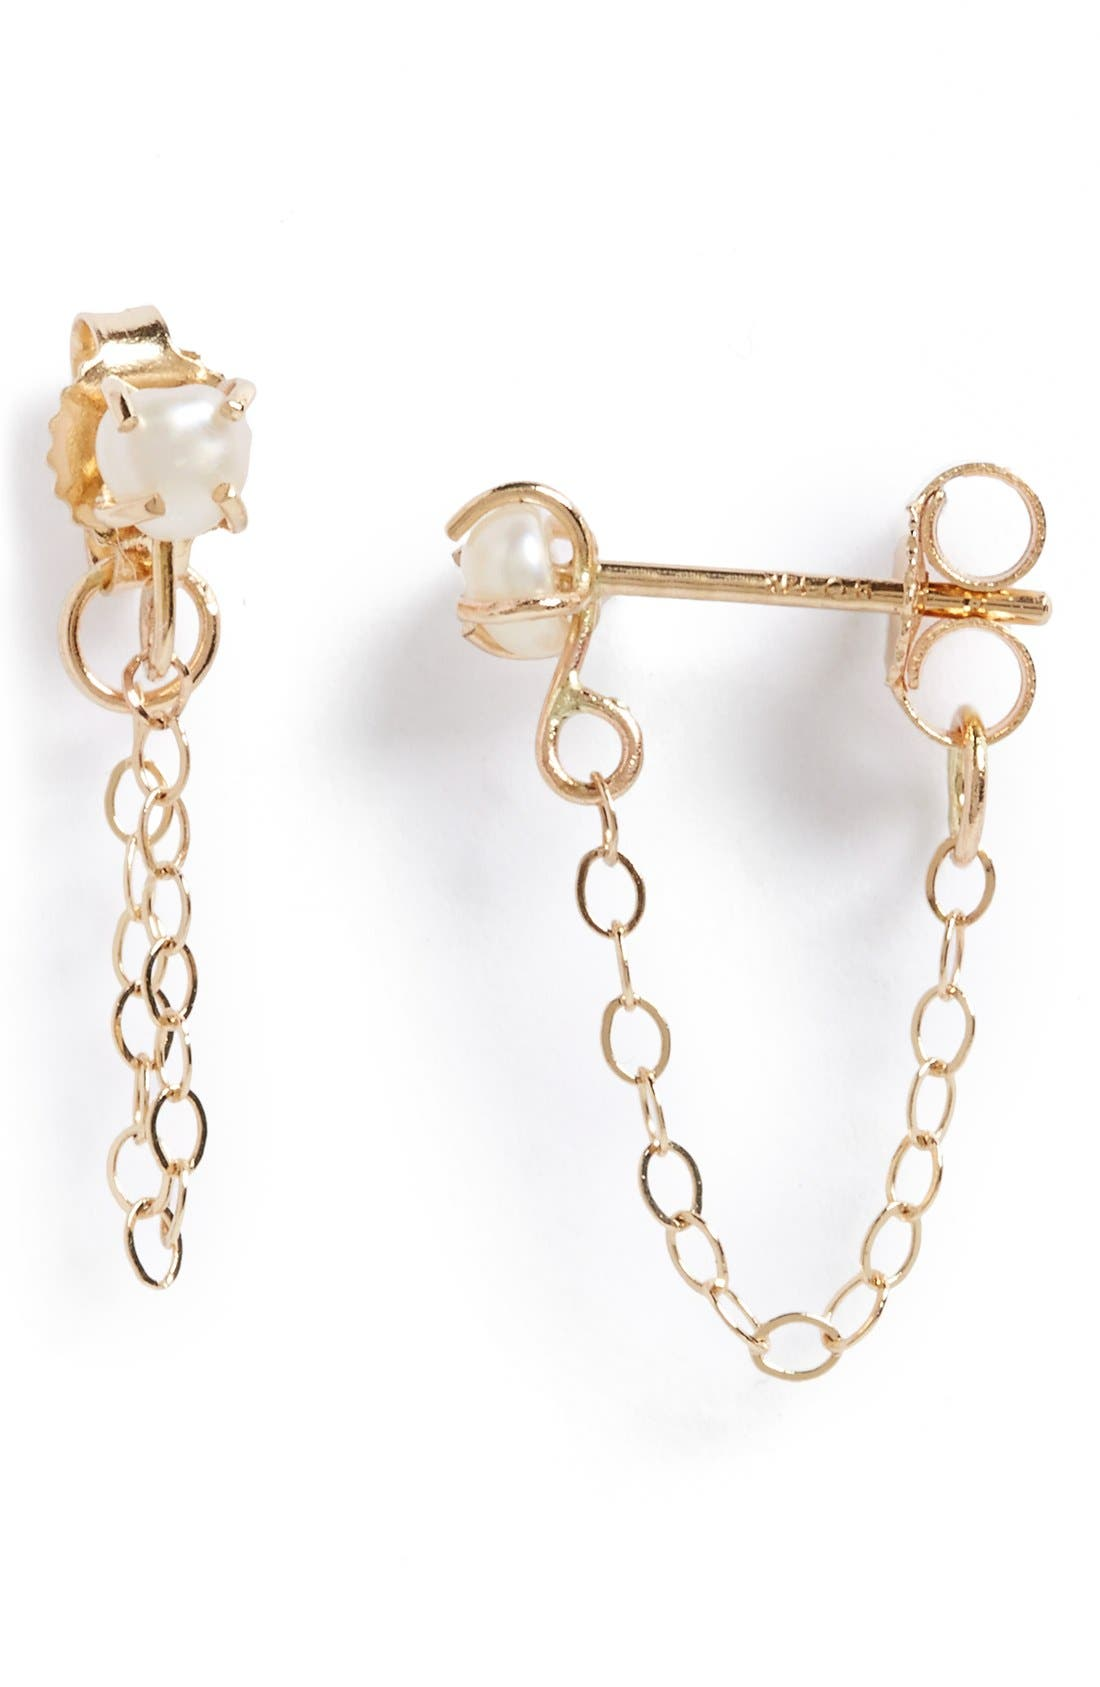 Melissa Joy Manning Keshi Pearl Ear Chains